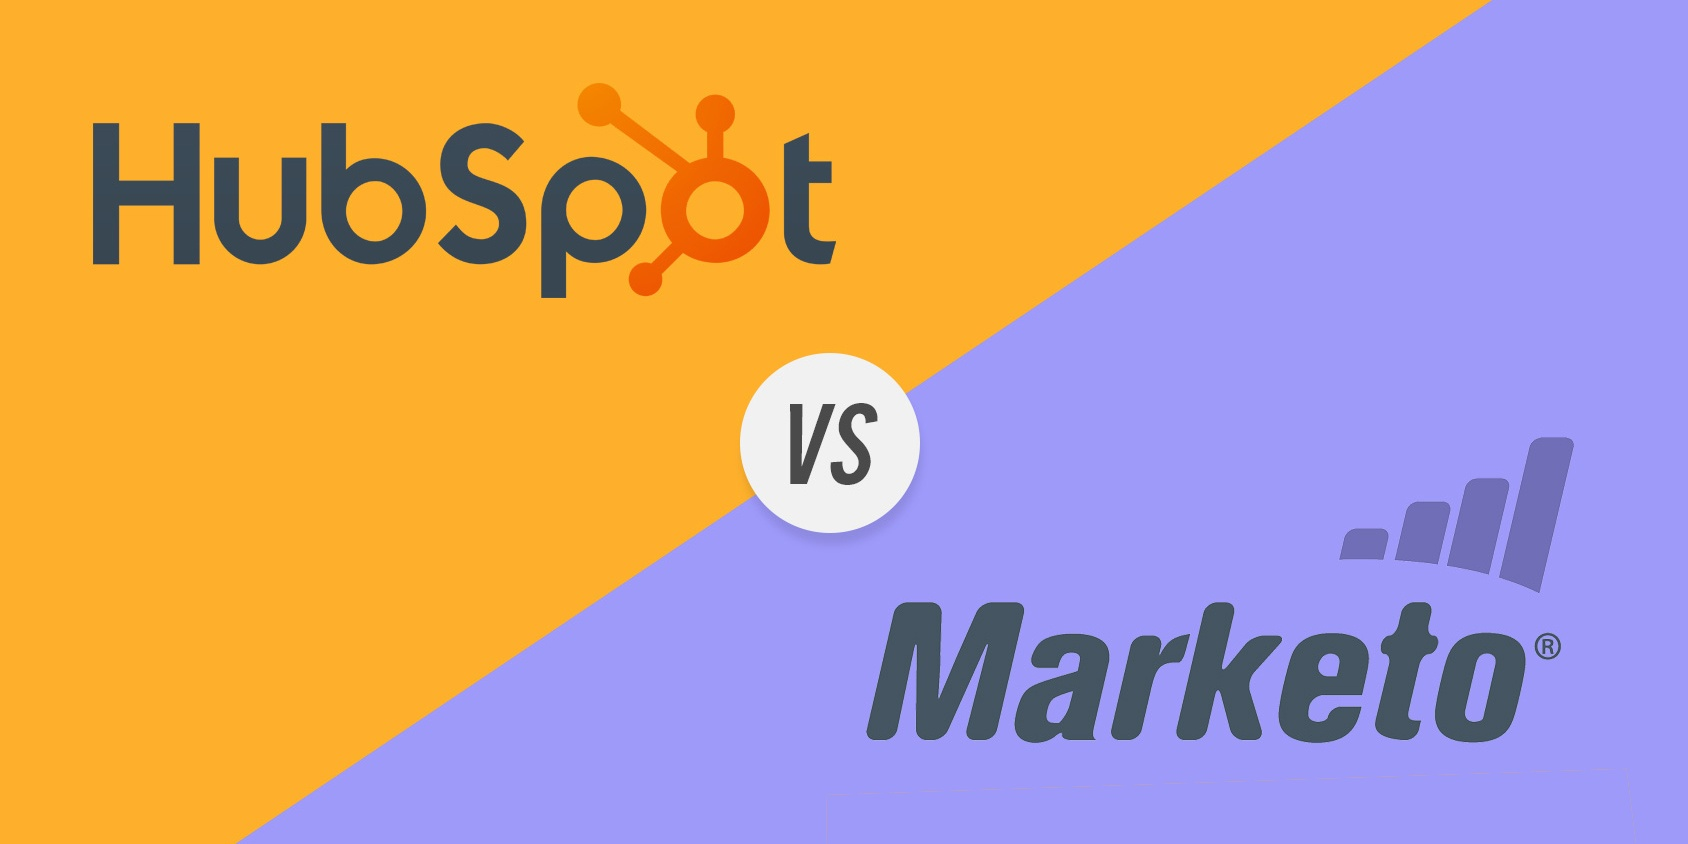 Marketing Automation Tool:  qual è il migliore fra Hubspot vs Marketo secondo i marketer?